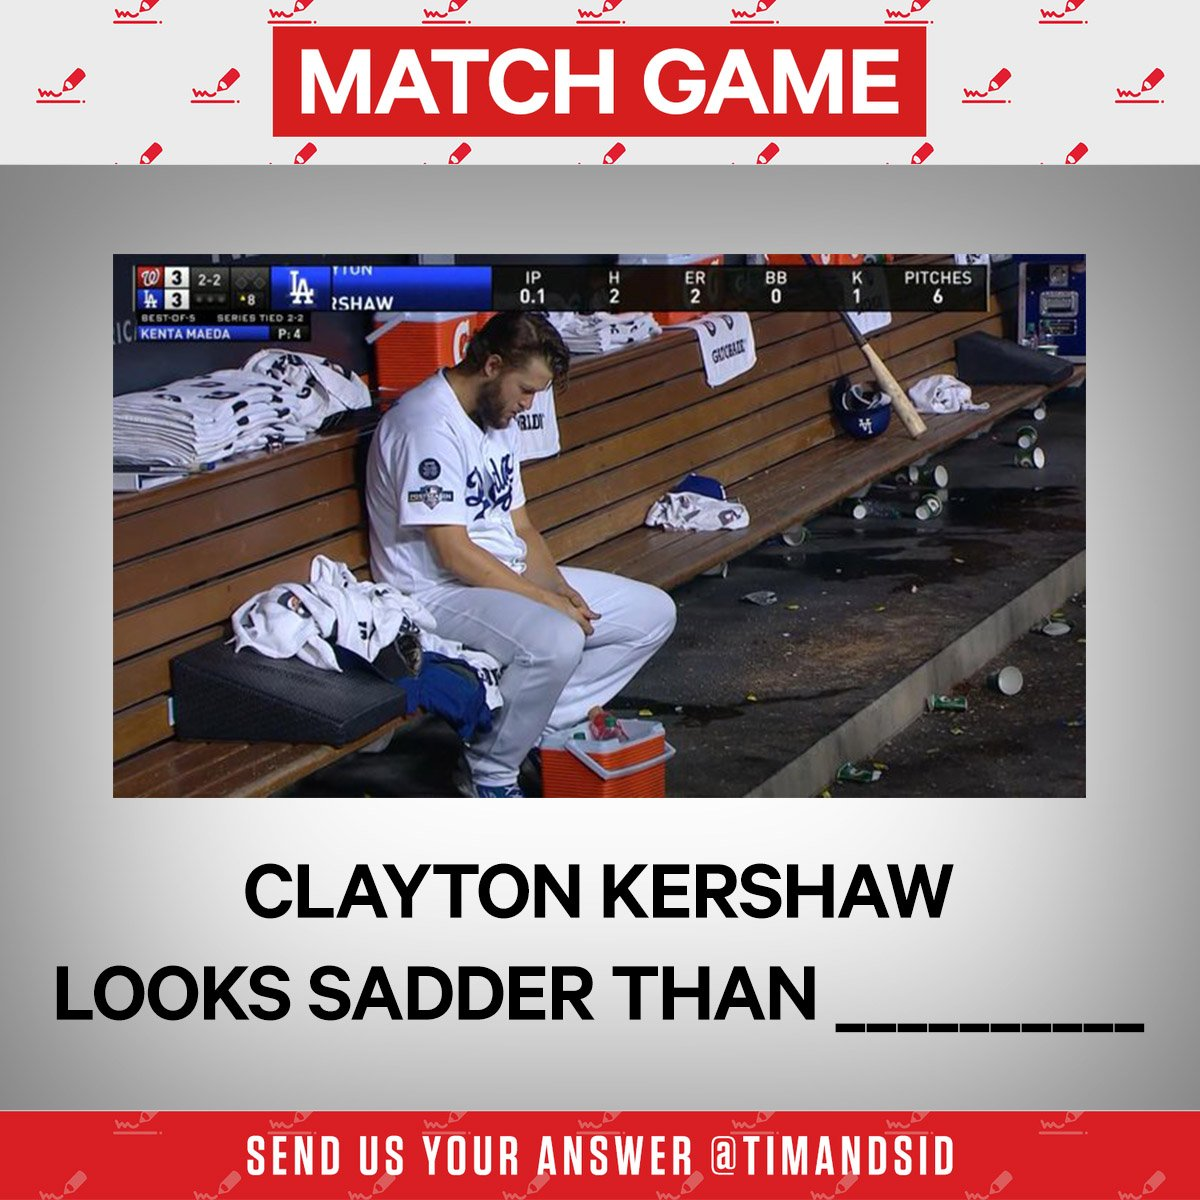 """🚨 MATCH GAME TIME! 🚨    """"Clayton Kershaw looks sadder than _______""""  Send your responses using the hashtags #MatchGame and #TimAndSid to follow along. ✍️👇"""